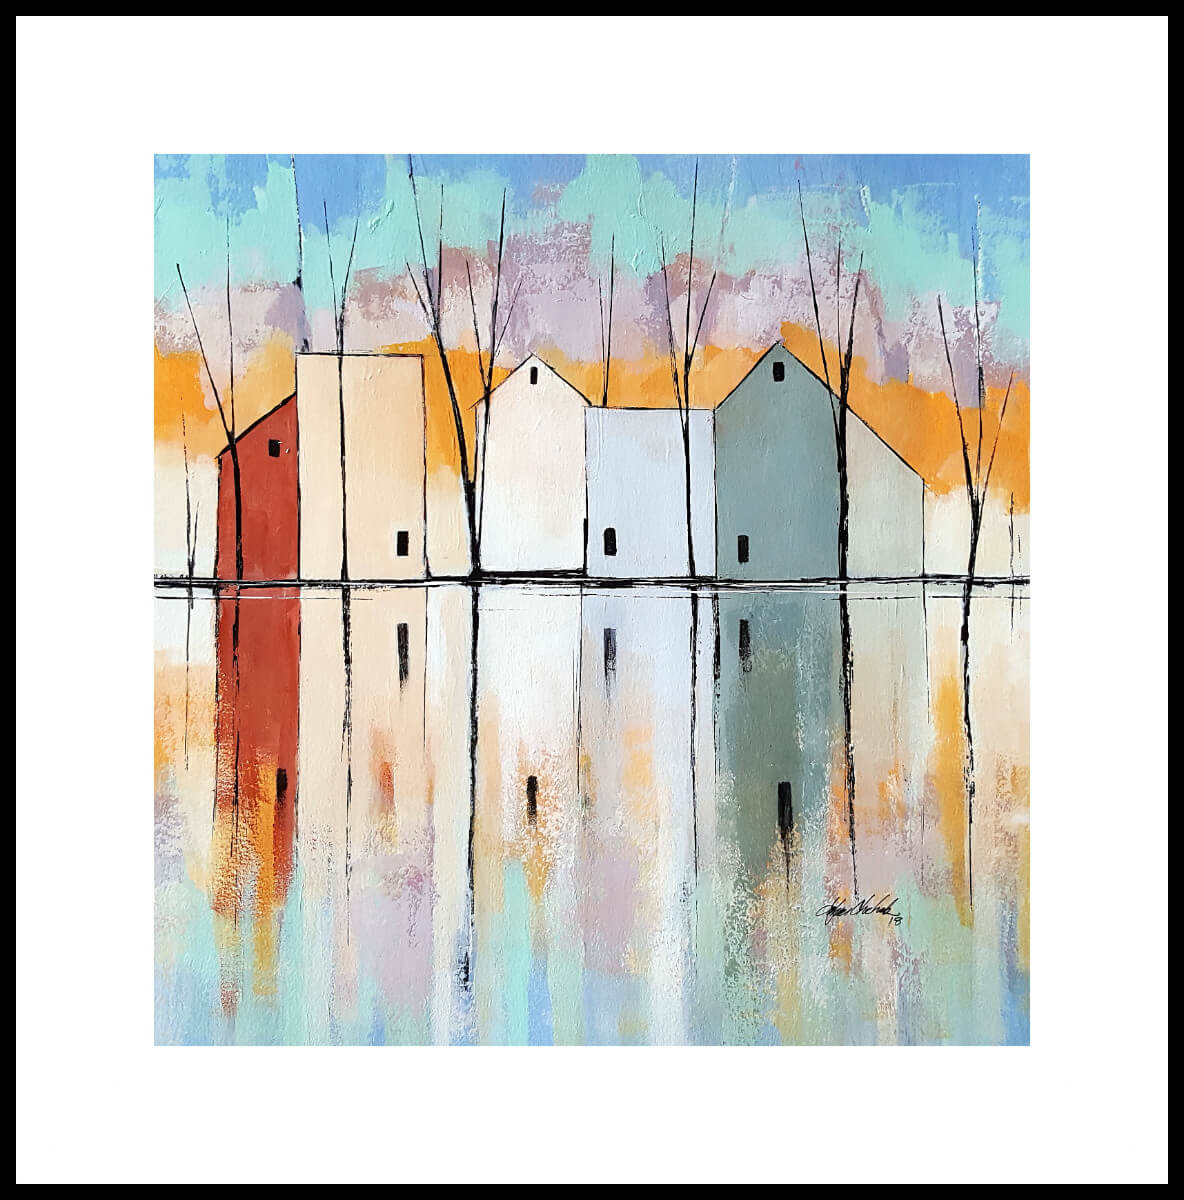 Reflection Pond | Classy second marriage gift idea | Wedding Registry for Art